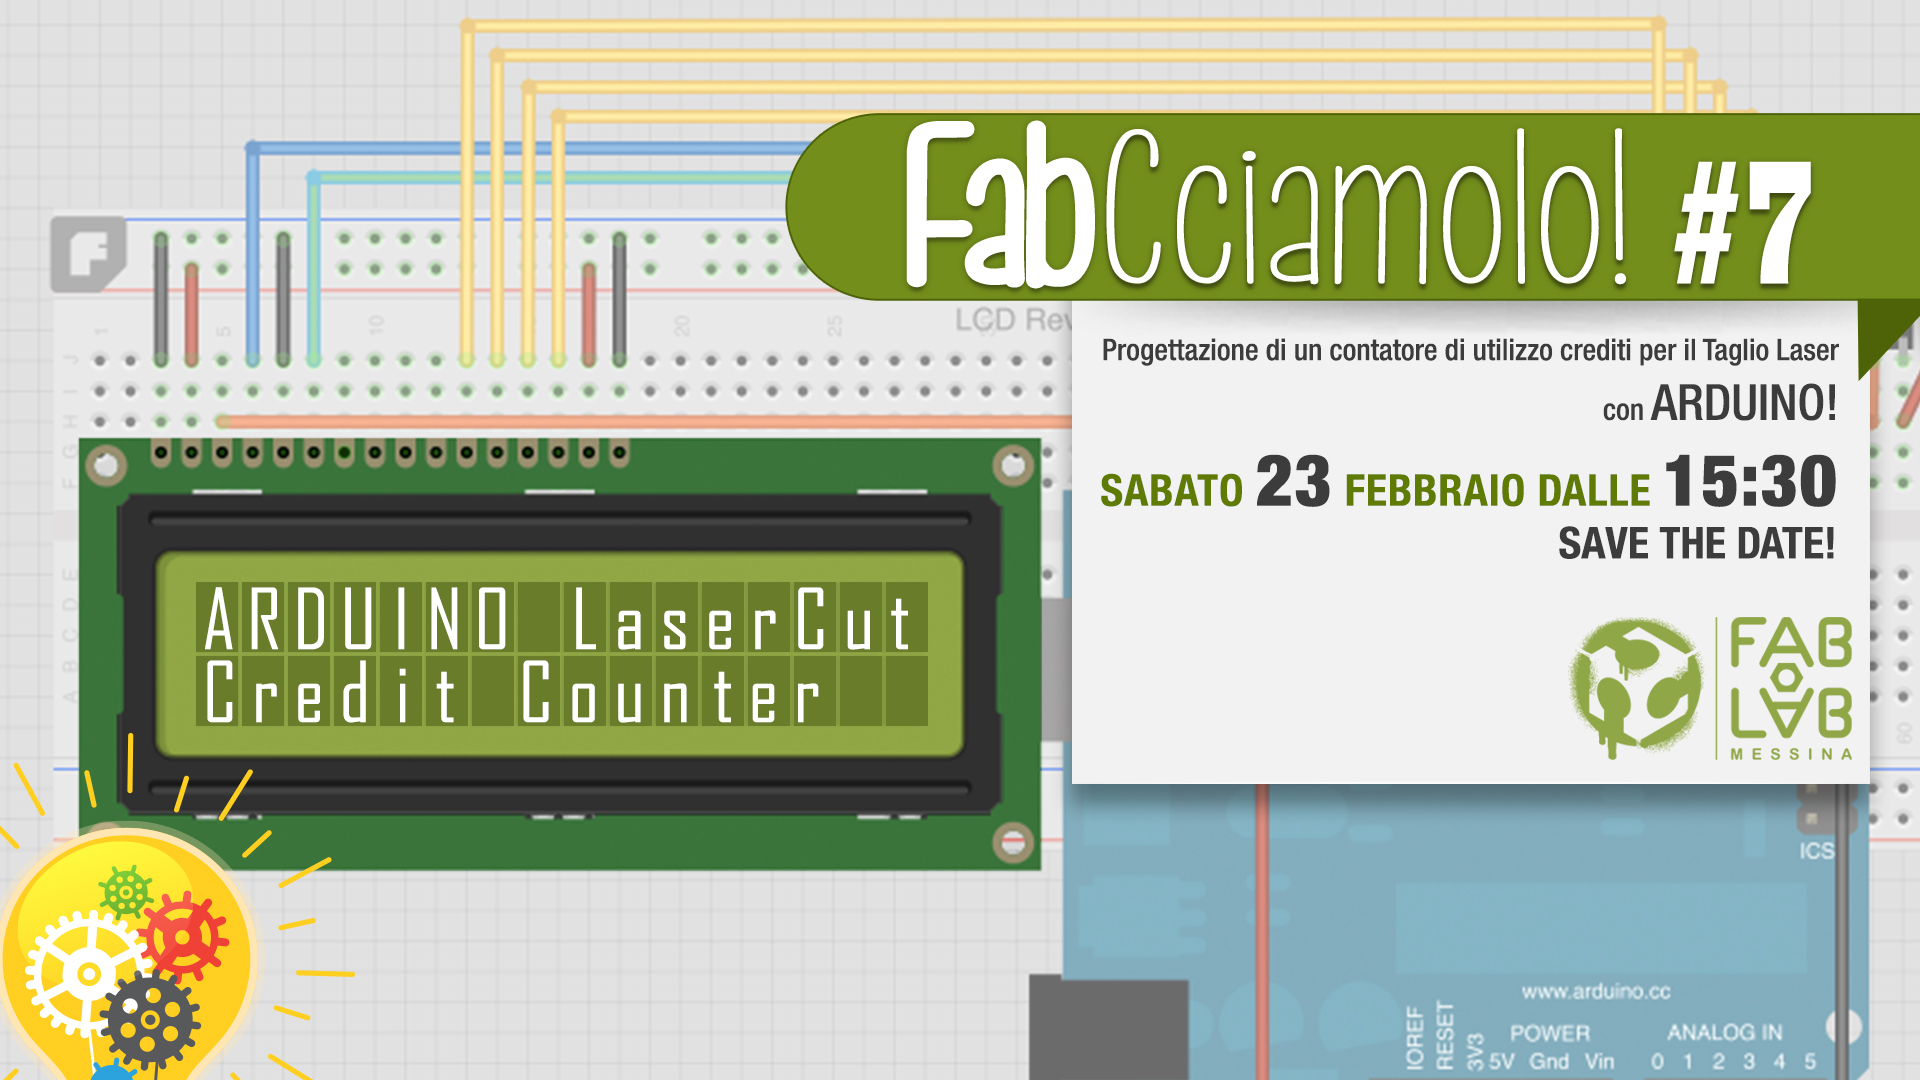 FabCciamolo!#7 ARDUINO Credit Counter